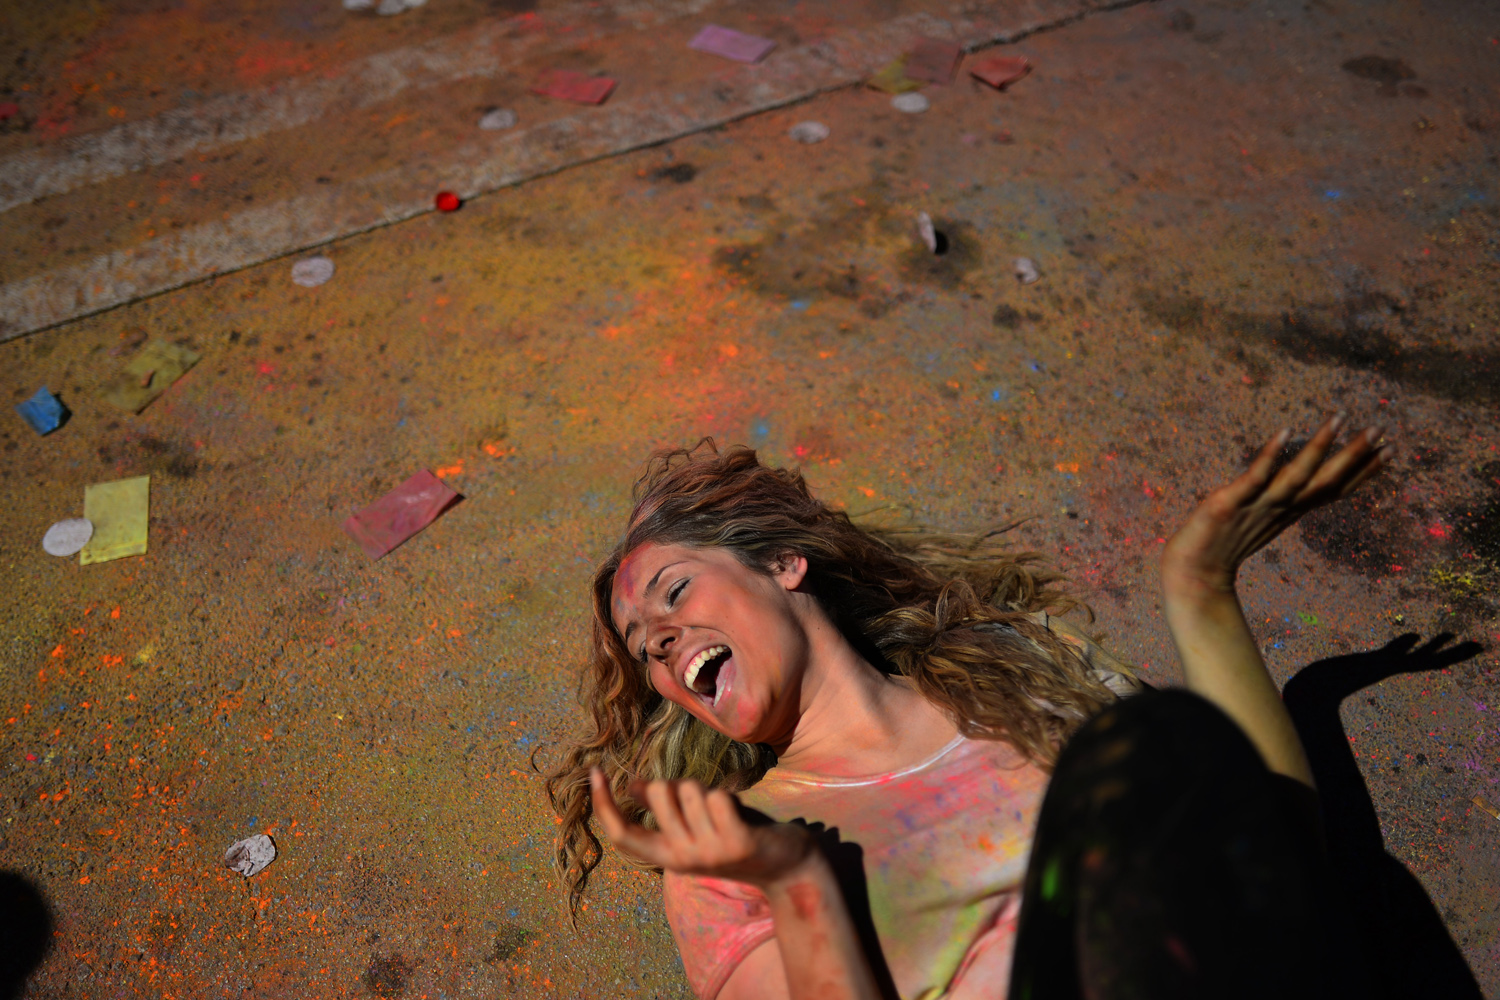 Apr. 6, 2014. A woman enjoys the atmosphere at the Holi Festival of Colours in Barcelona, Spain. The festival is fashioned after the Hindu spring festival Holi, which is mainly celebrated in the north and east of India.